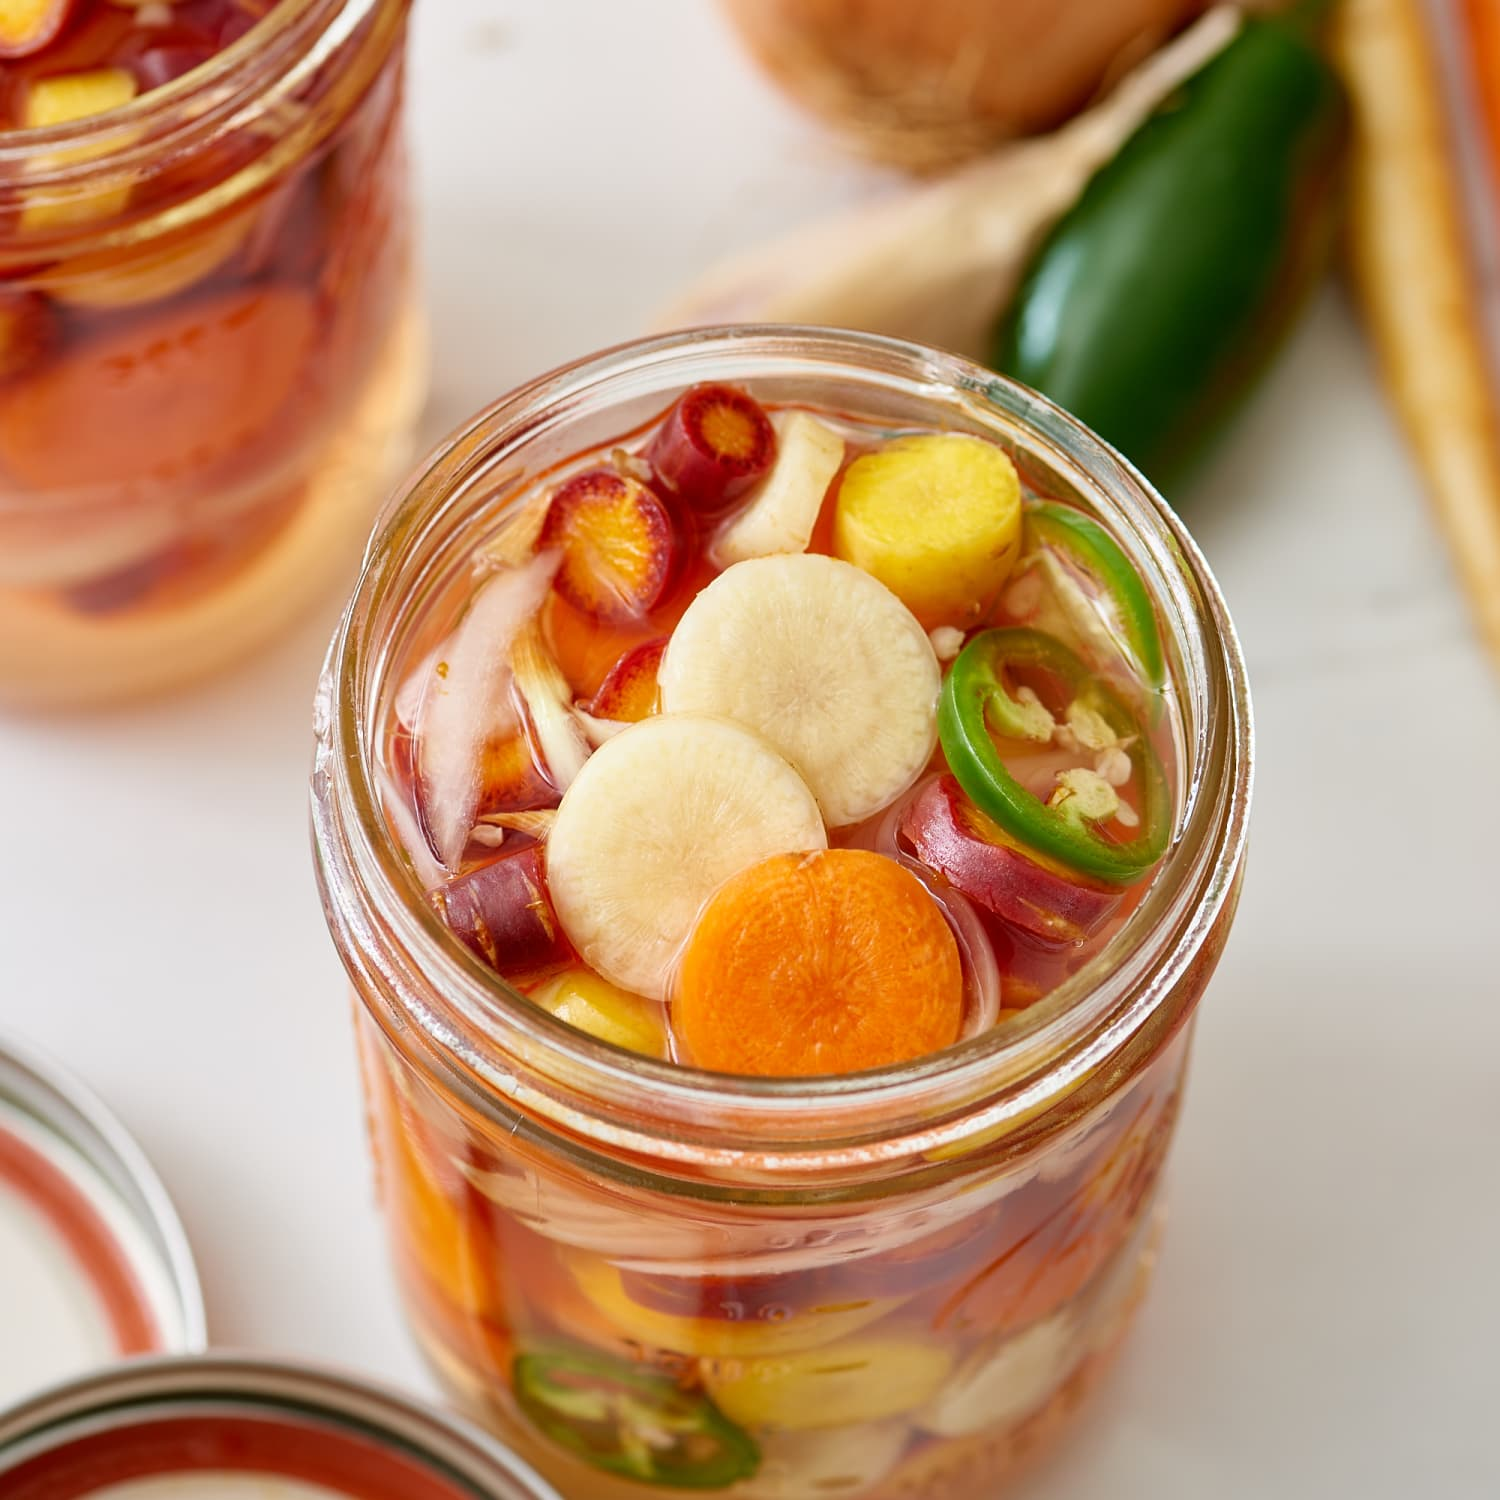 How To Make Pickled Carrots